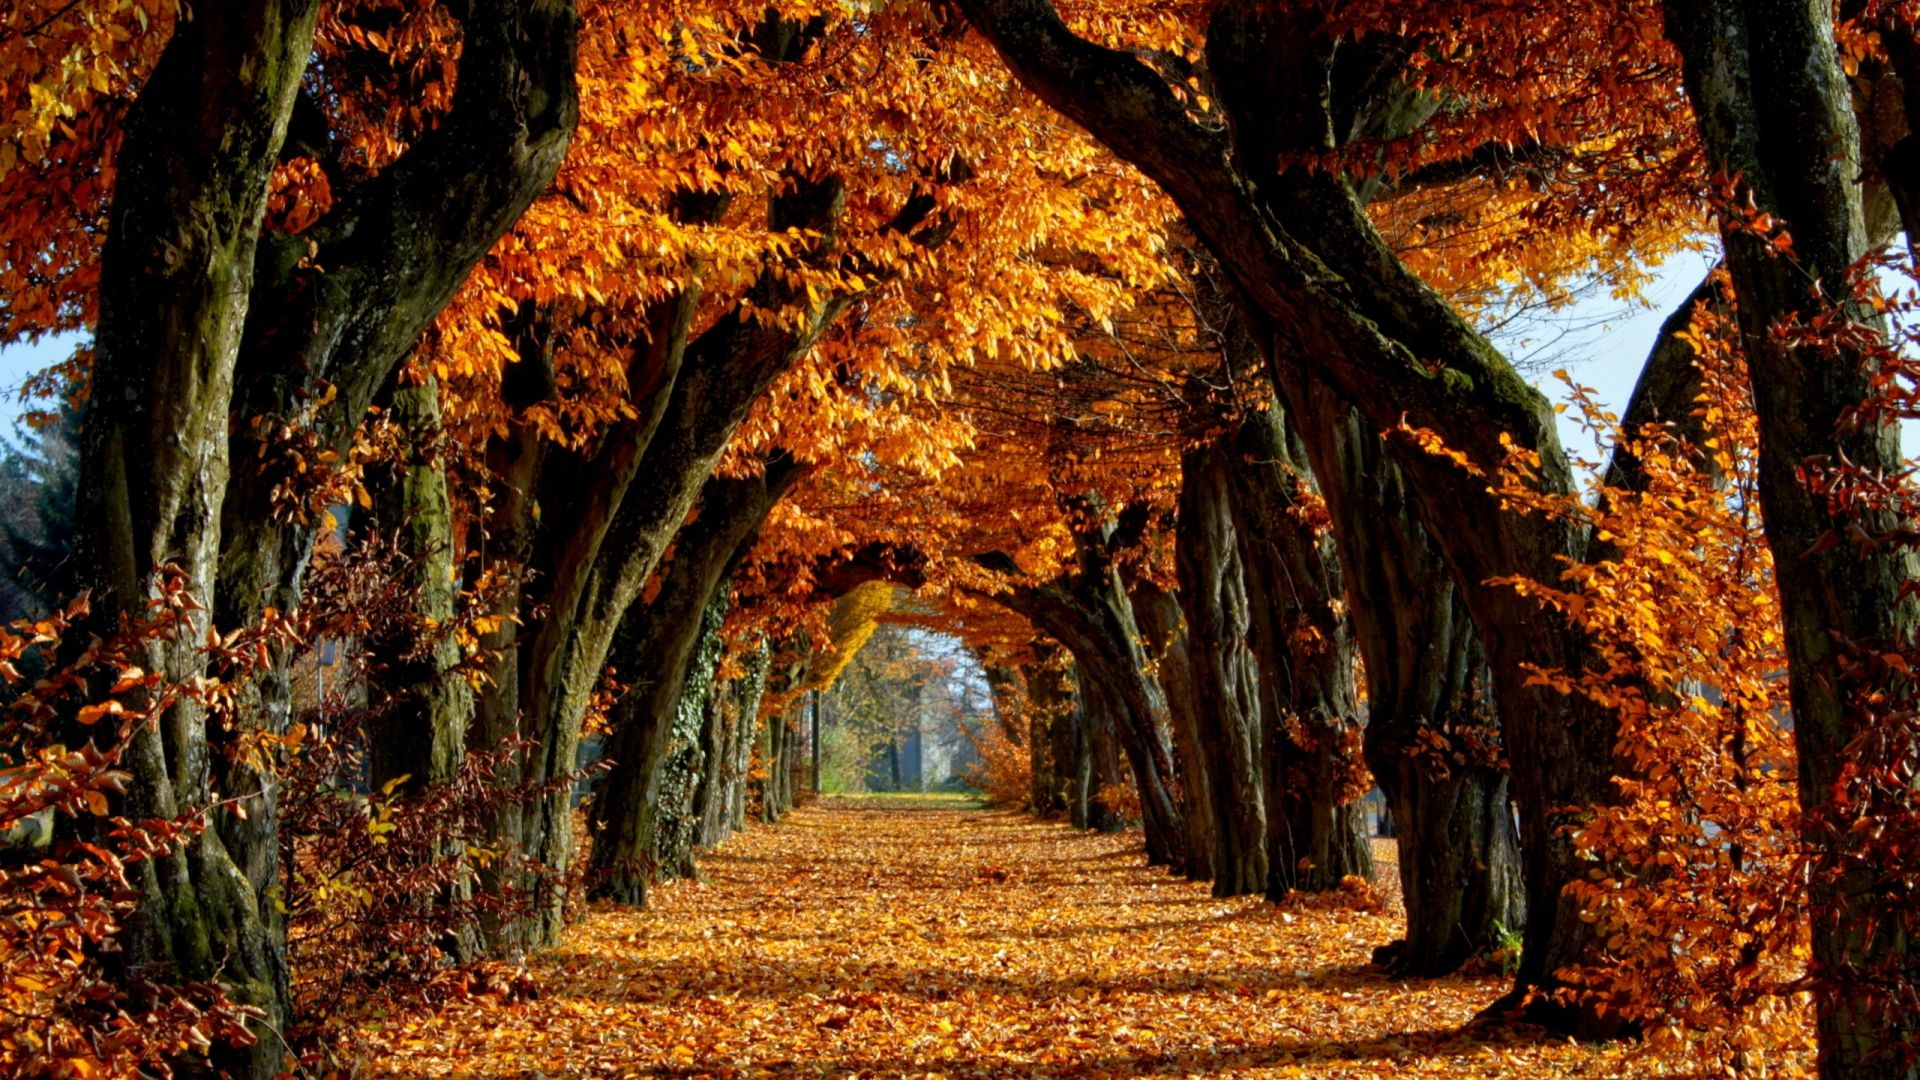 Download Wallpaper 1920x1080 Avenue Autumn Trees Long Term Leaves Gold Path Full Hd 1080p Hd Backgr Desktop Wallpaper Fall Autumn Nature Nature Wallpaper